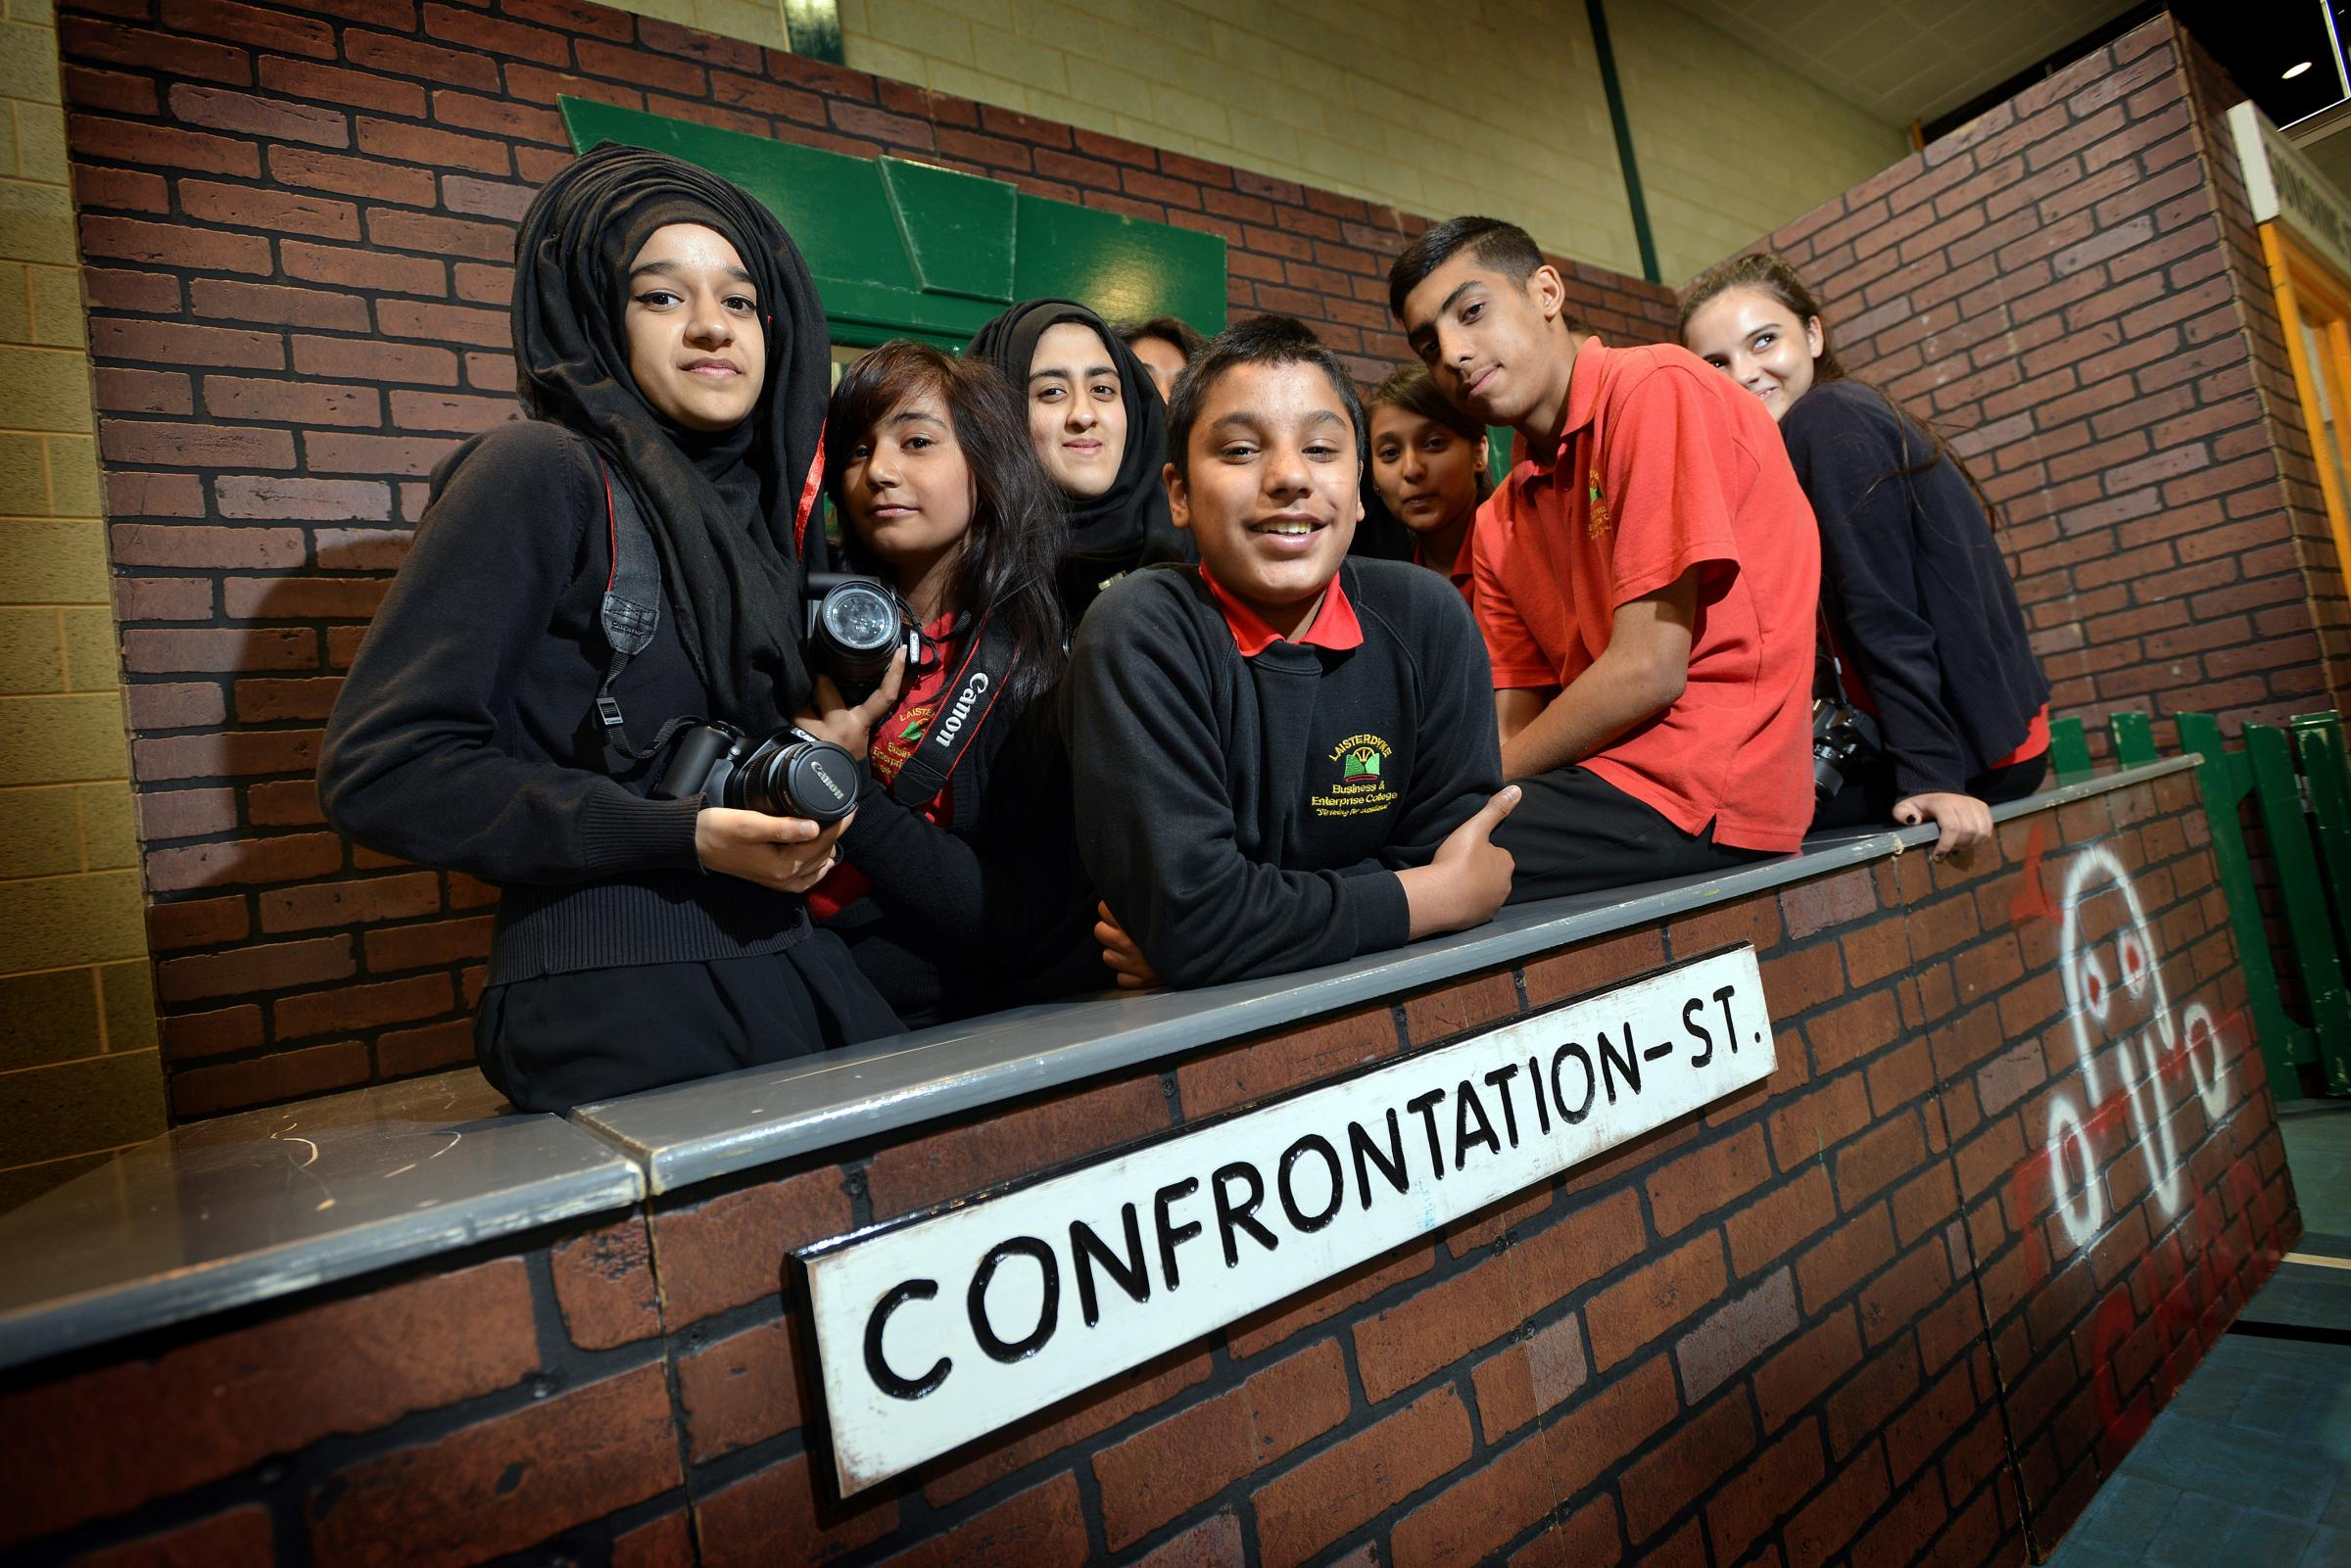 Reformed criminals deliver anti-crime message to Bradford pupils